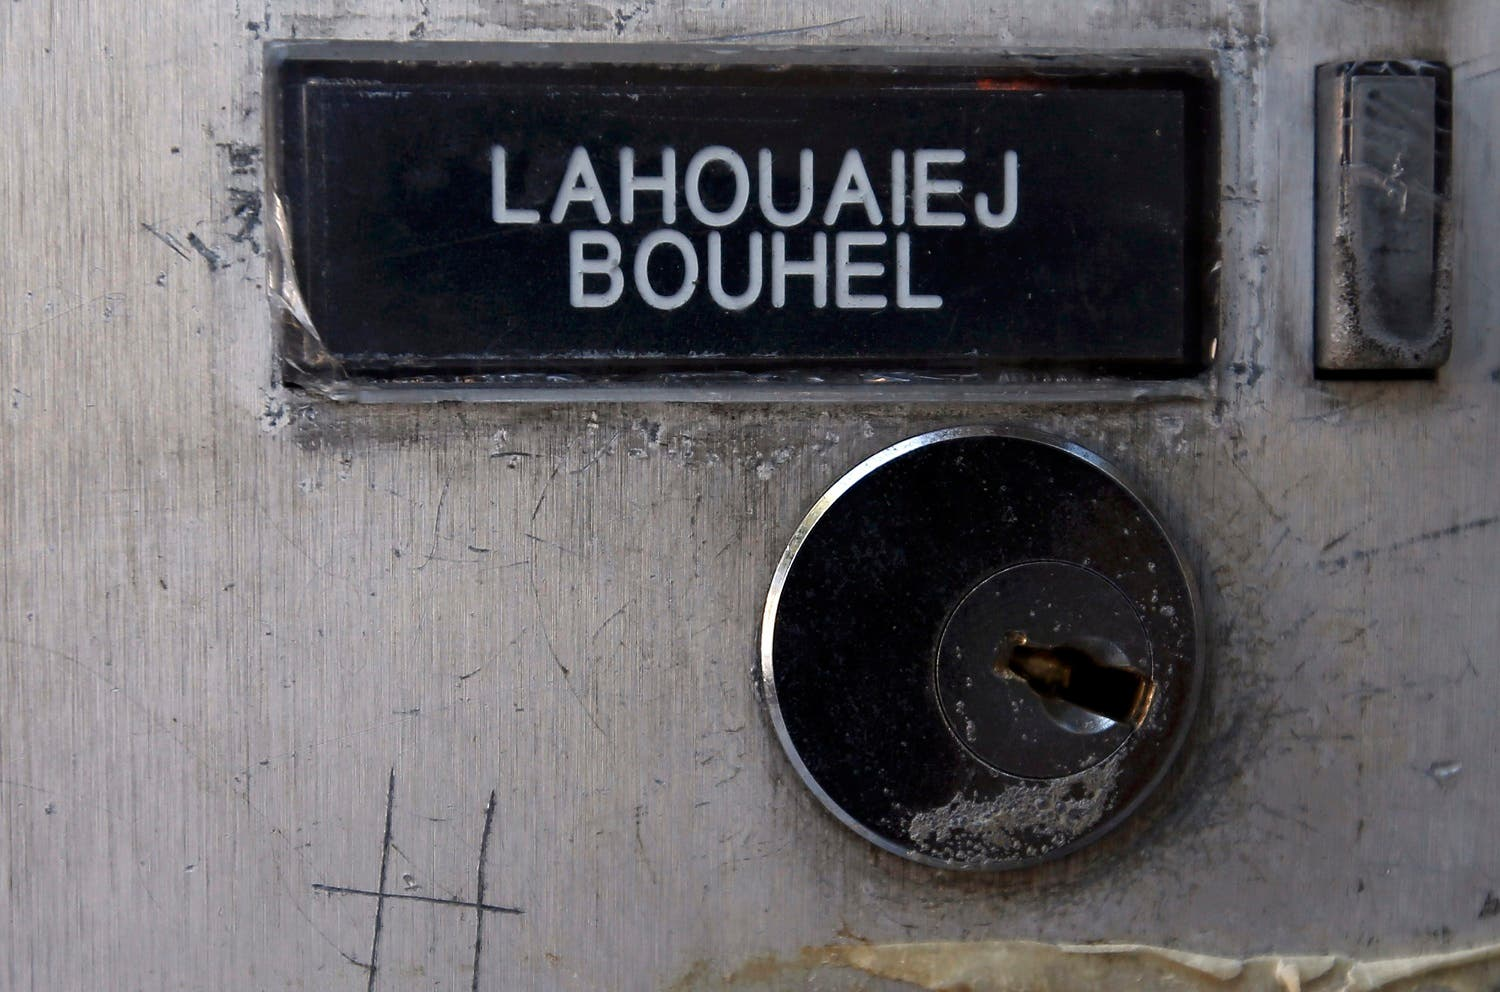 The name Mohamed Lahoualej Bouhlel is seen on a plate outside the building where he lived in Nice. (Reuters)